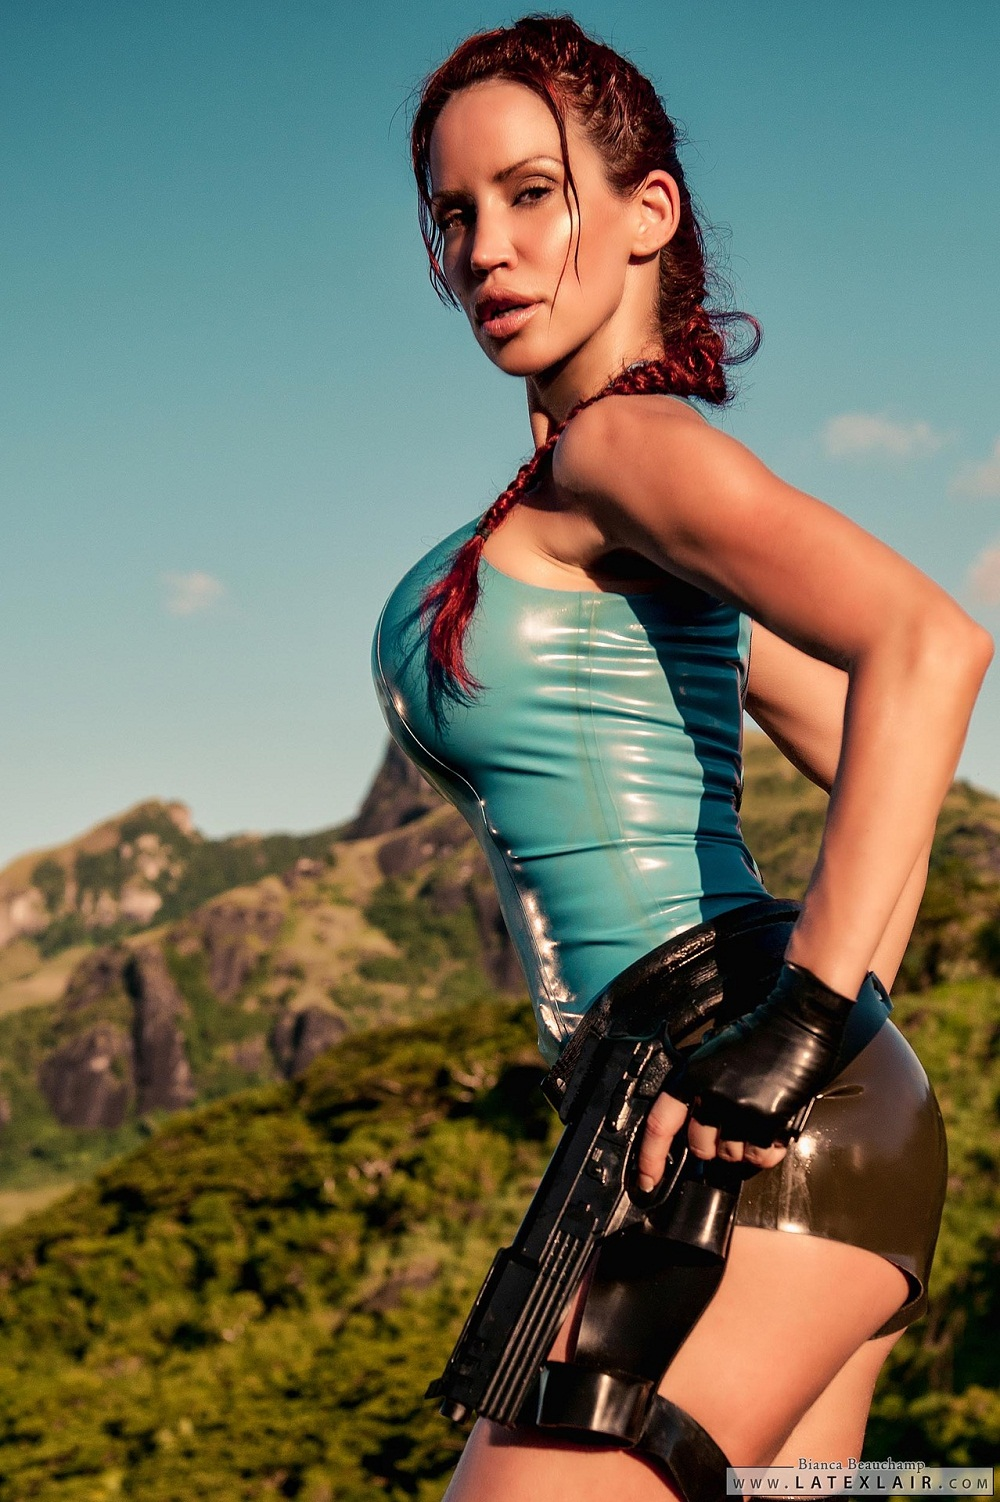 Lara croft underground latex mod xxx movie